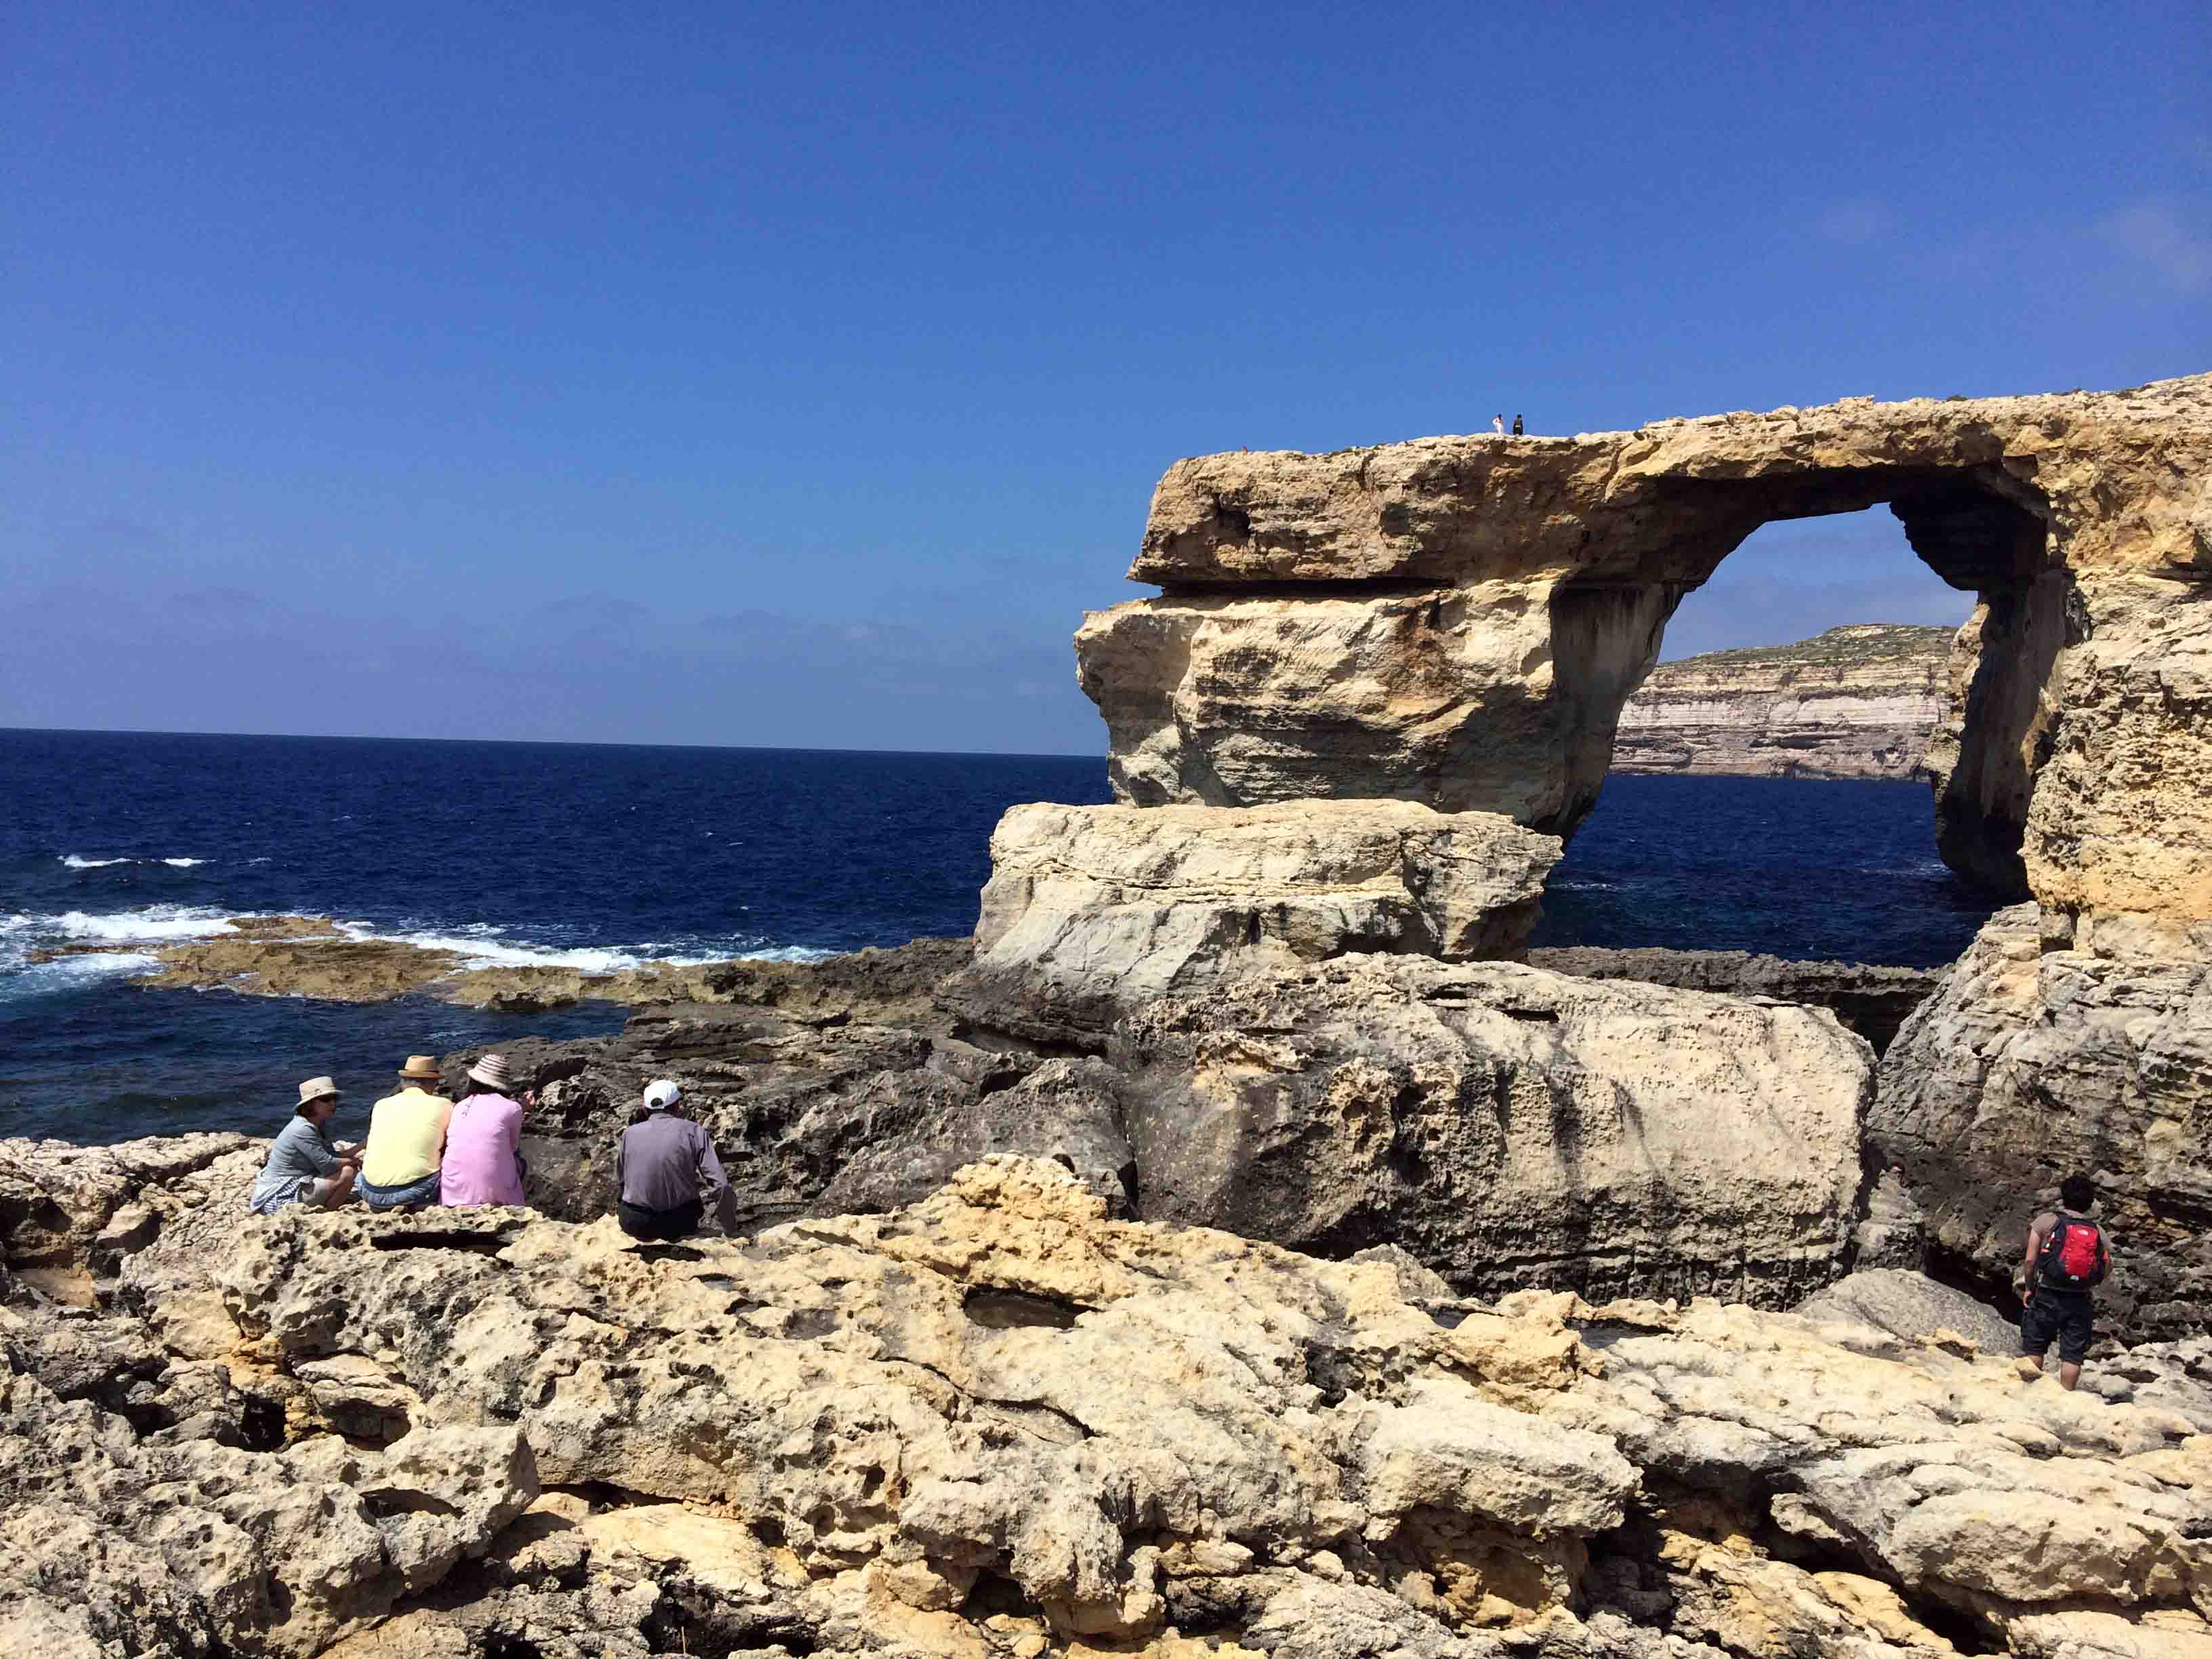 Video: Sightseeing on the Island of Gozo